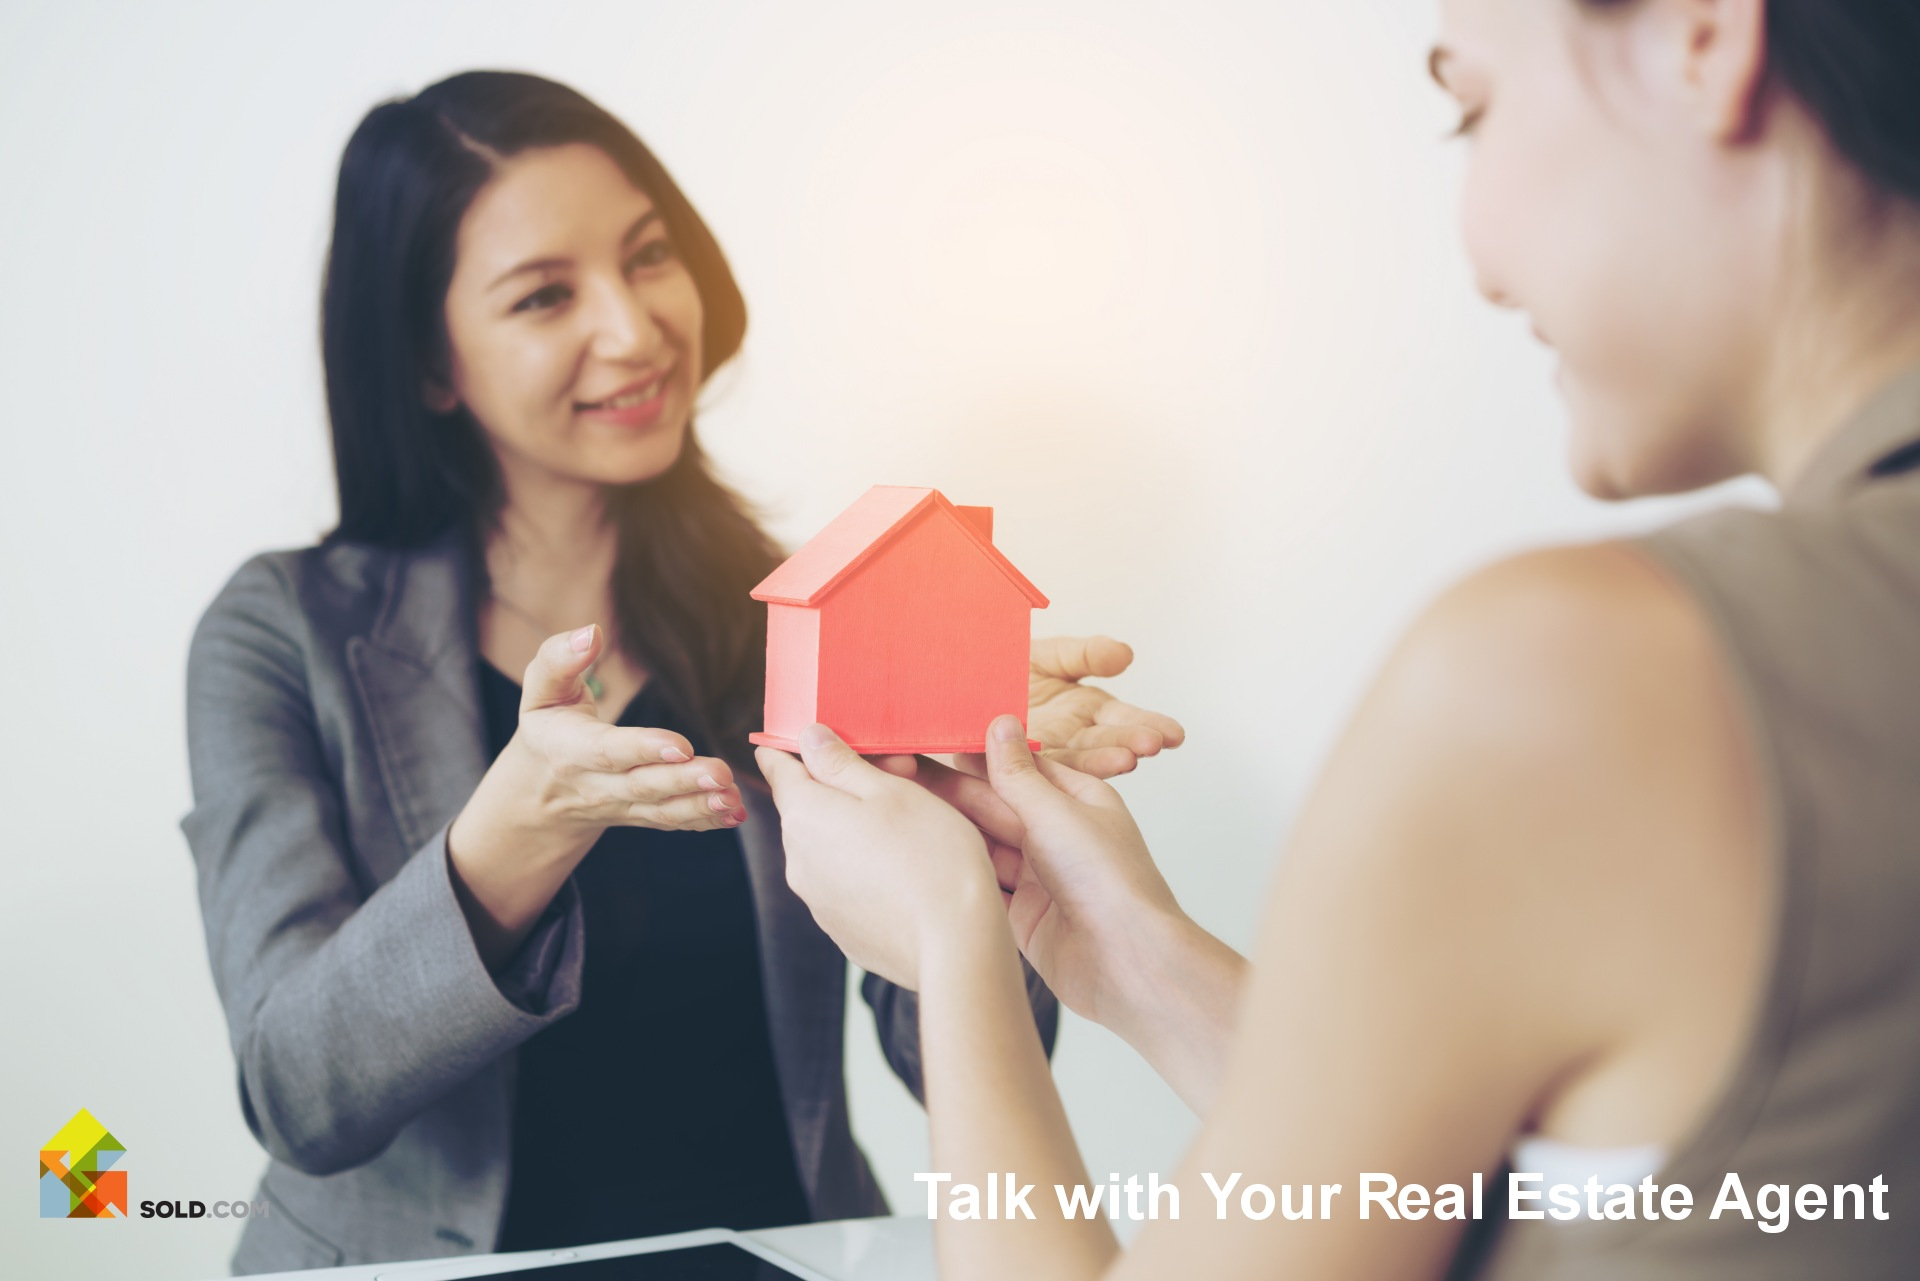 How to Talk with Your Real Estate Agent